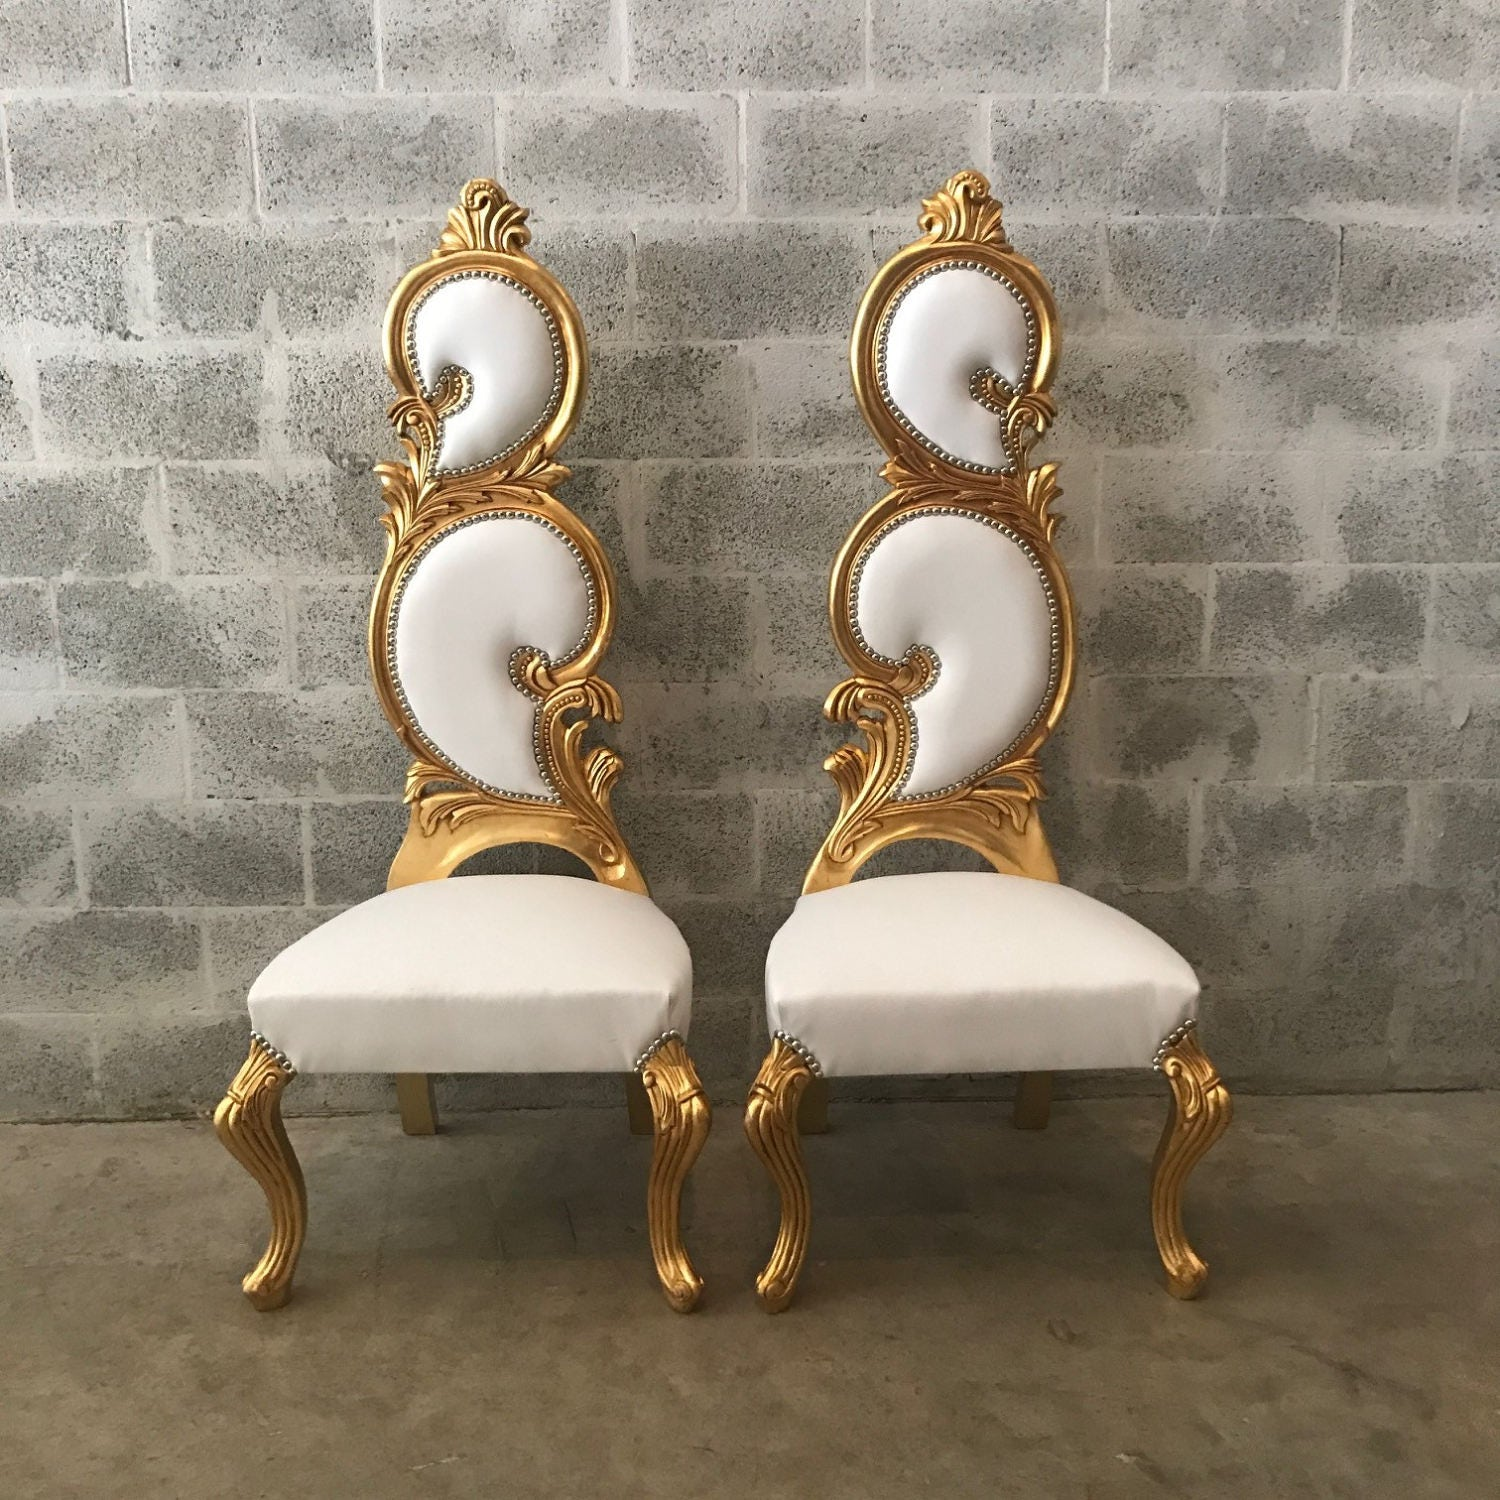 Italian Baroque Throne Chair High Back Reproduction White Leather